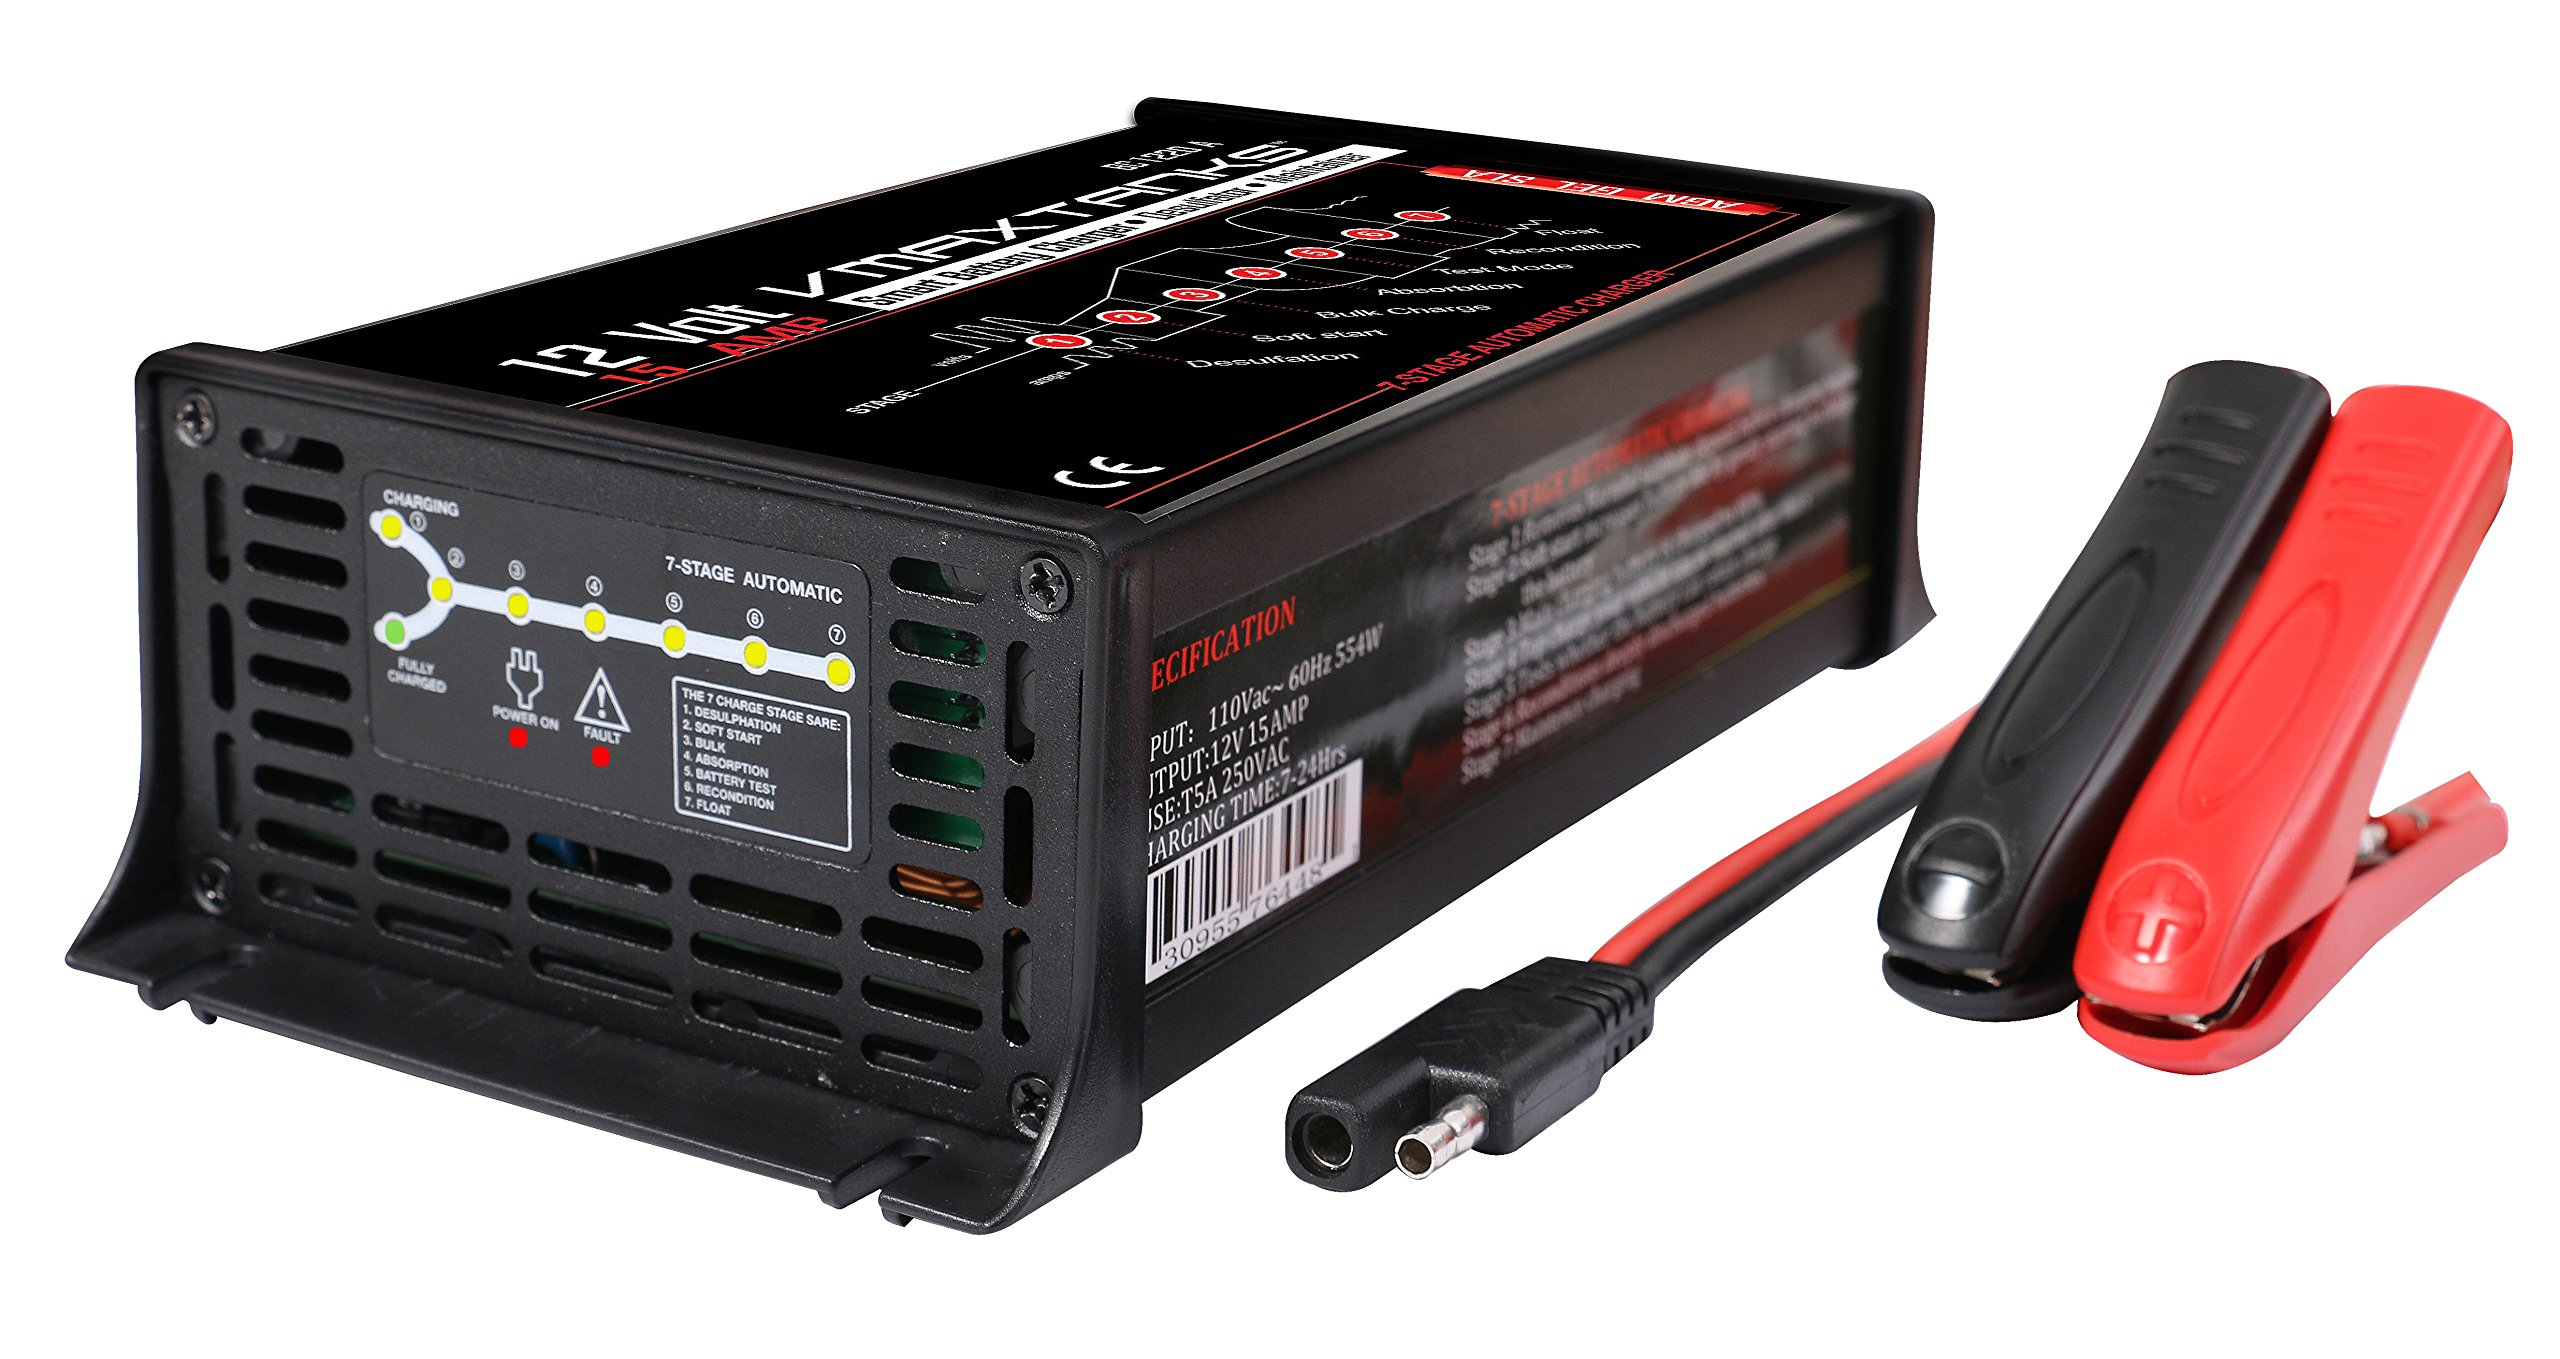 VMAXTANKS BC1215 15 Amp 12 Volt 7 Stage Heavy Duty Smart Battery Charger & Maintainer for AGM, GEL, SLA, & Automobile Batteries. Charge, maintain and restore your car, suv, or truck's 12V battery